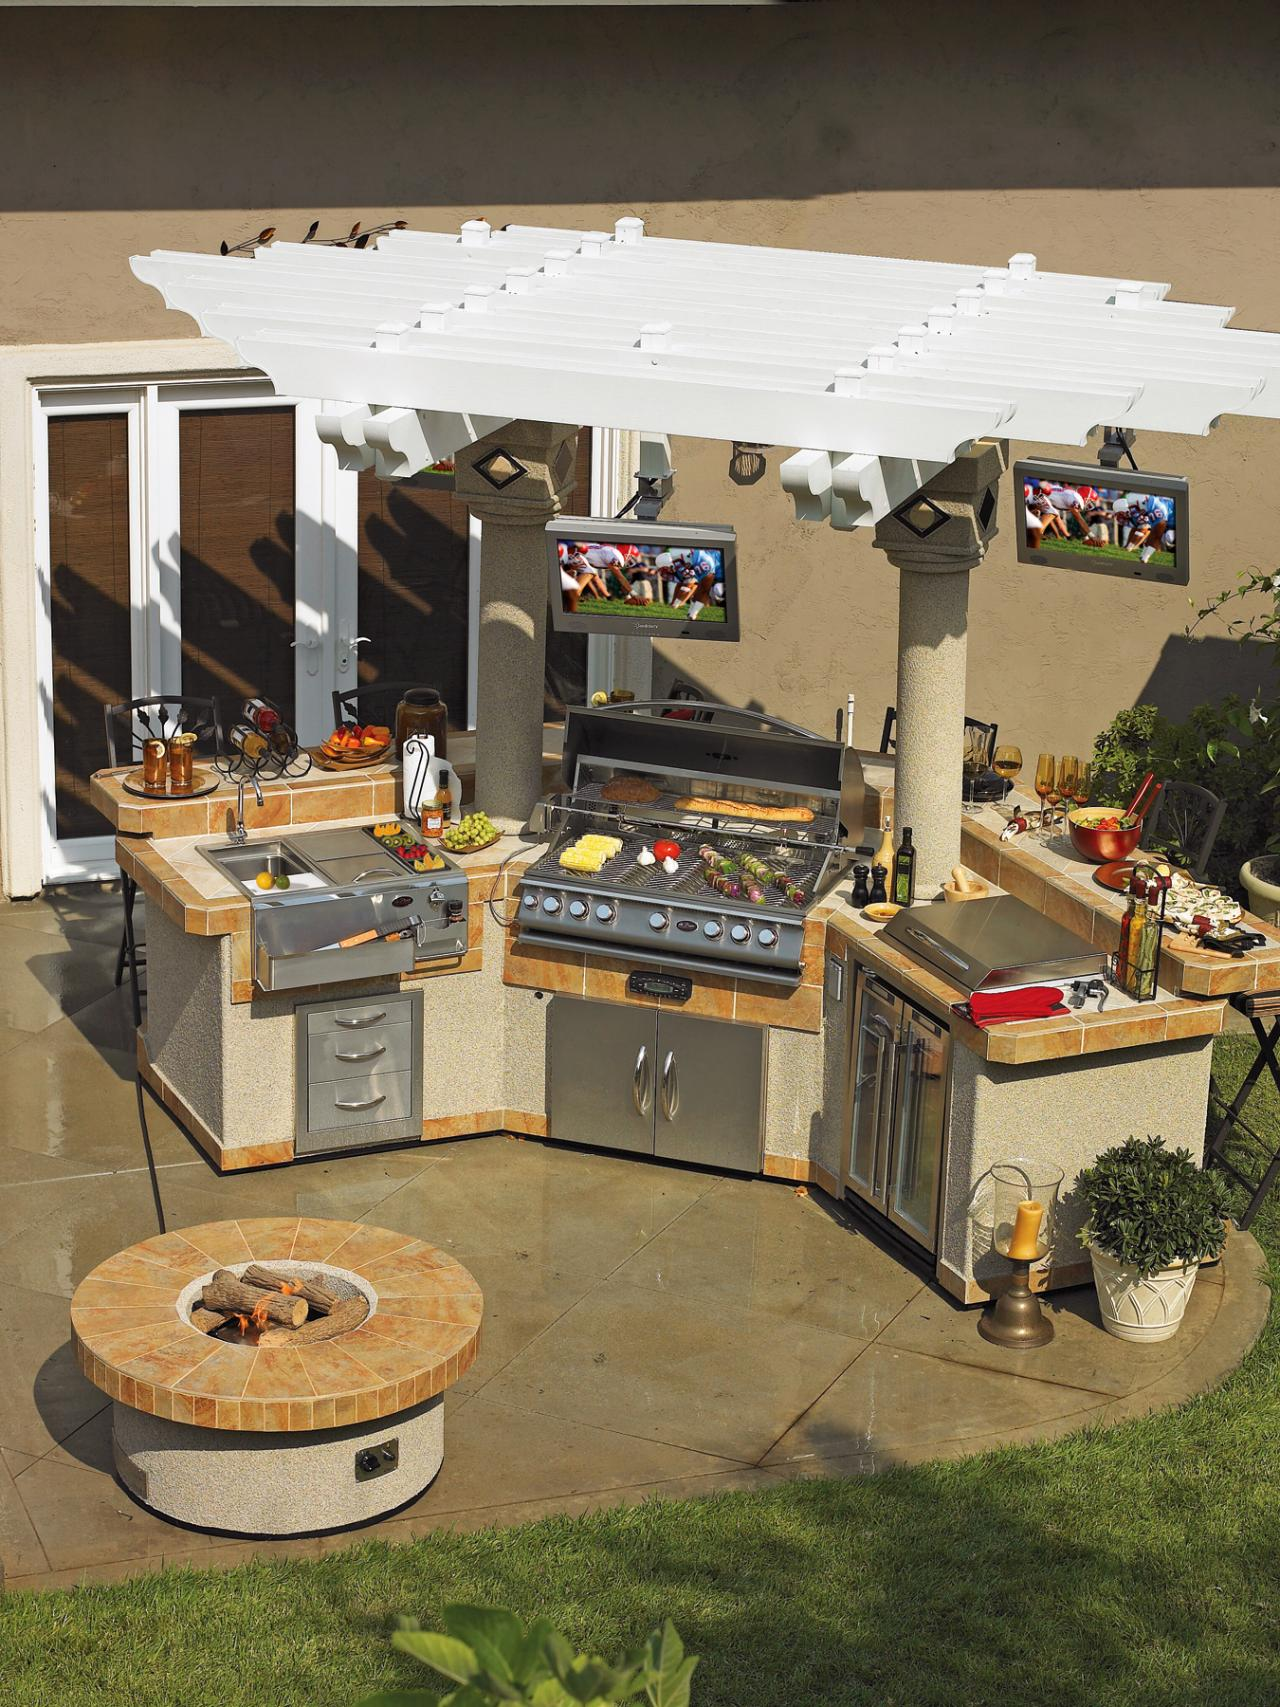 Optimizing An Outdoor Kitchen Layout HGTV - Outdoor kitchen designs with smoker